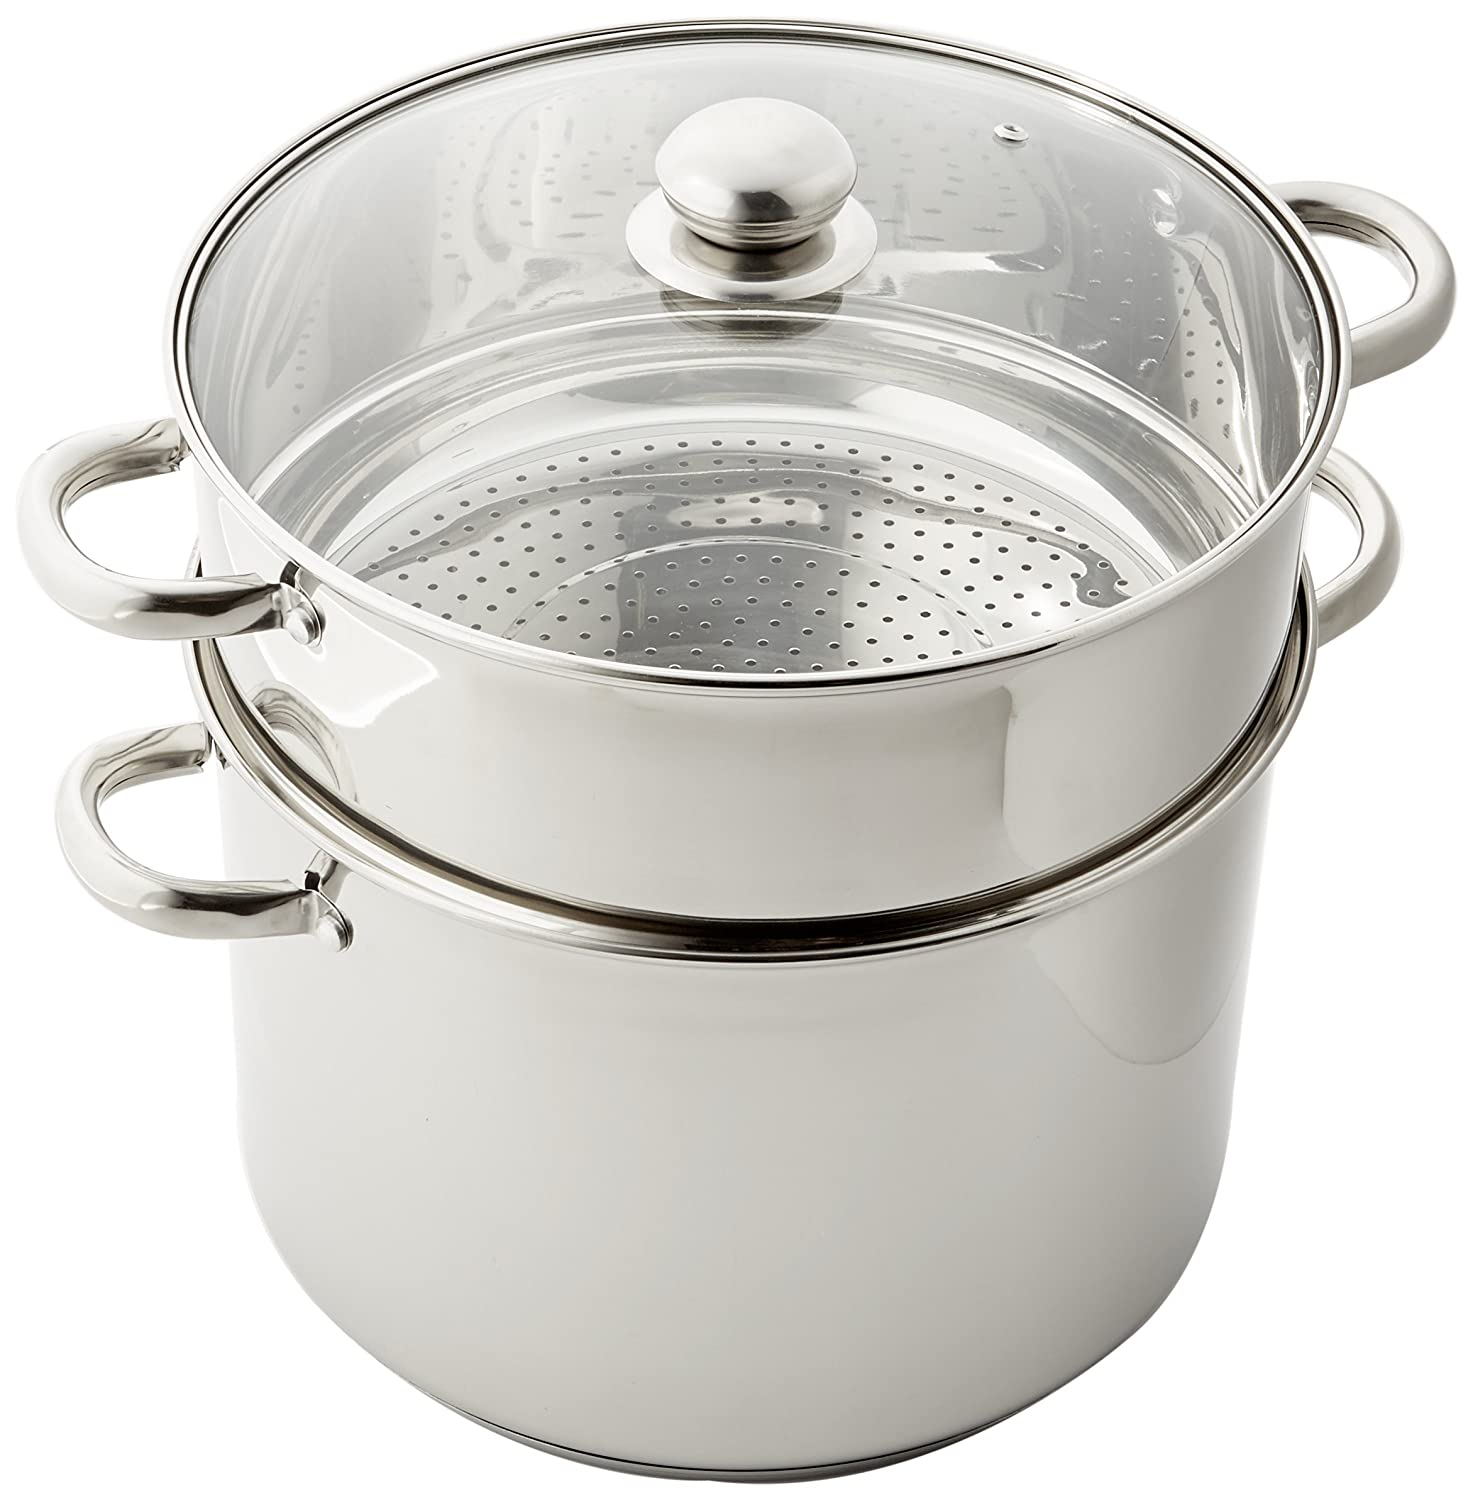 Kamberg Couscous Pan, Stainless Steel, Stainless Steel, gray, 23,5 x 23,5 x 22 cm Cash Impact 0008070